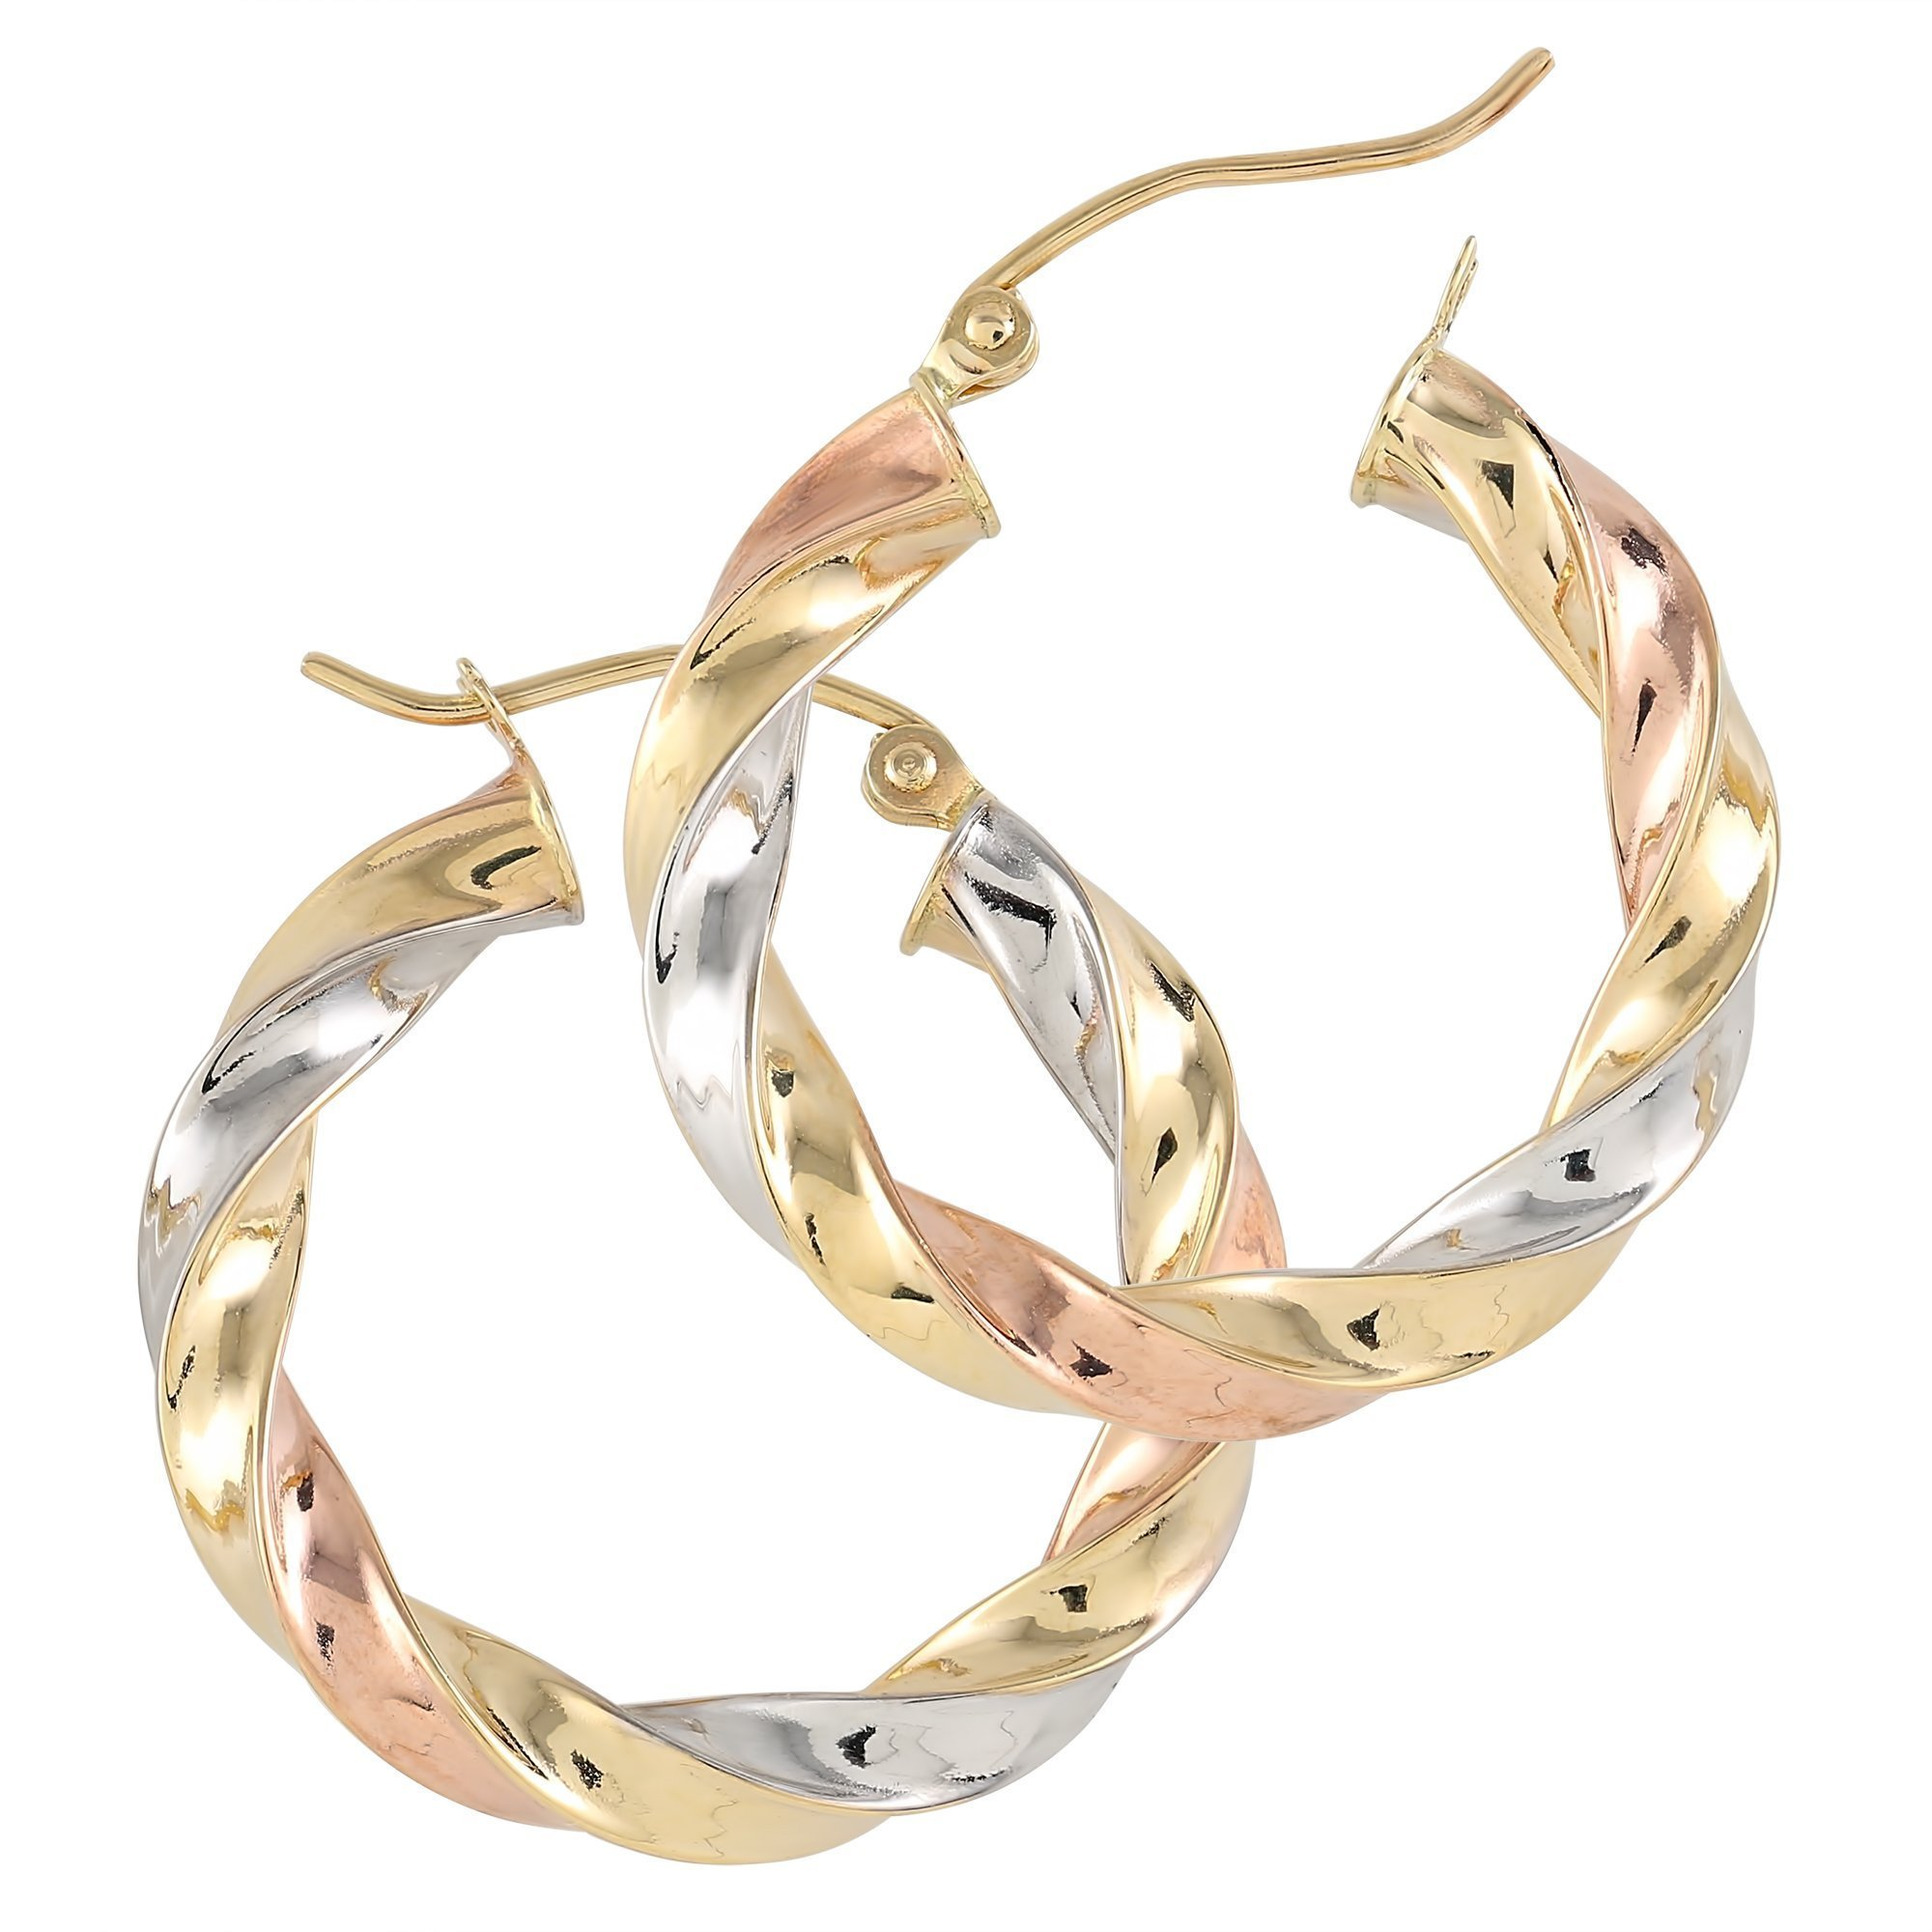 Balluccitoosi Tri Color Round Spiral Hoop Earrings - 14k Gold Earring for Women and Girls - Unique Jewelry for Everyday